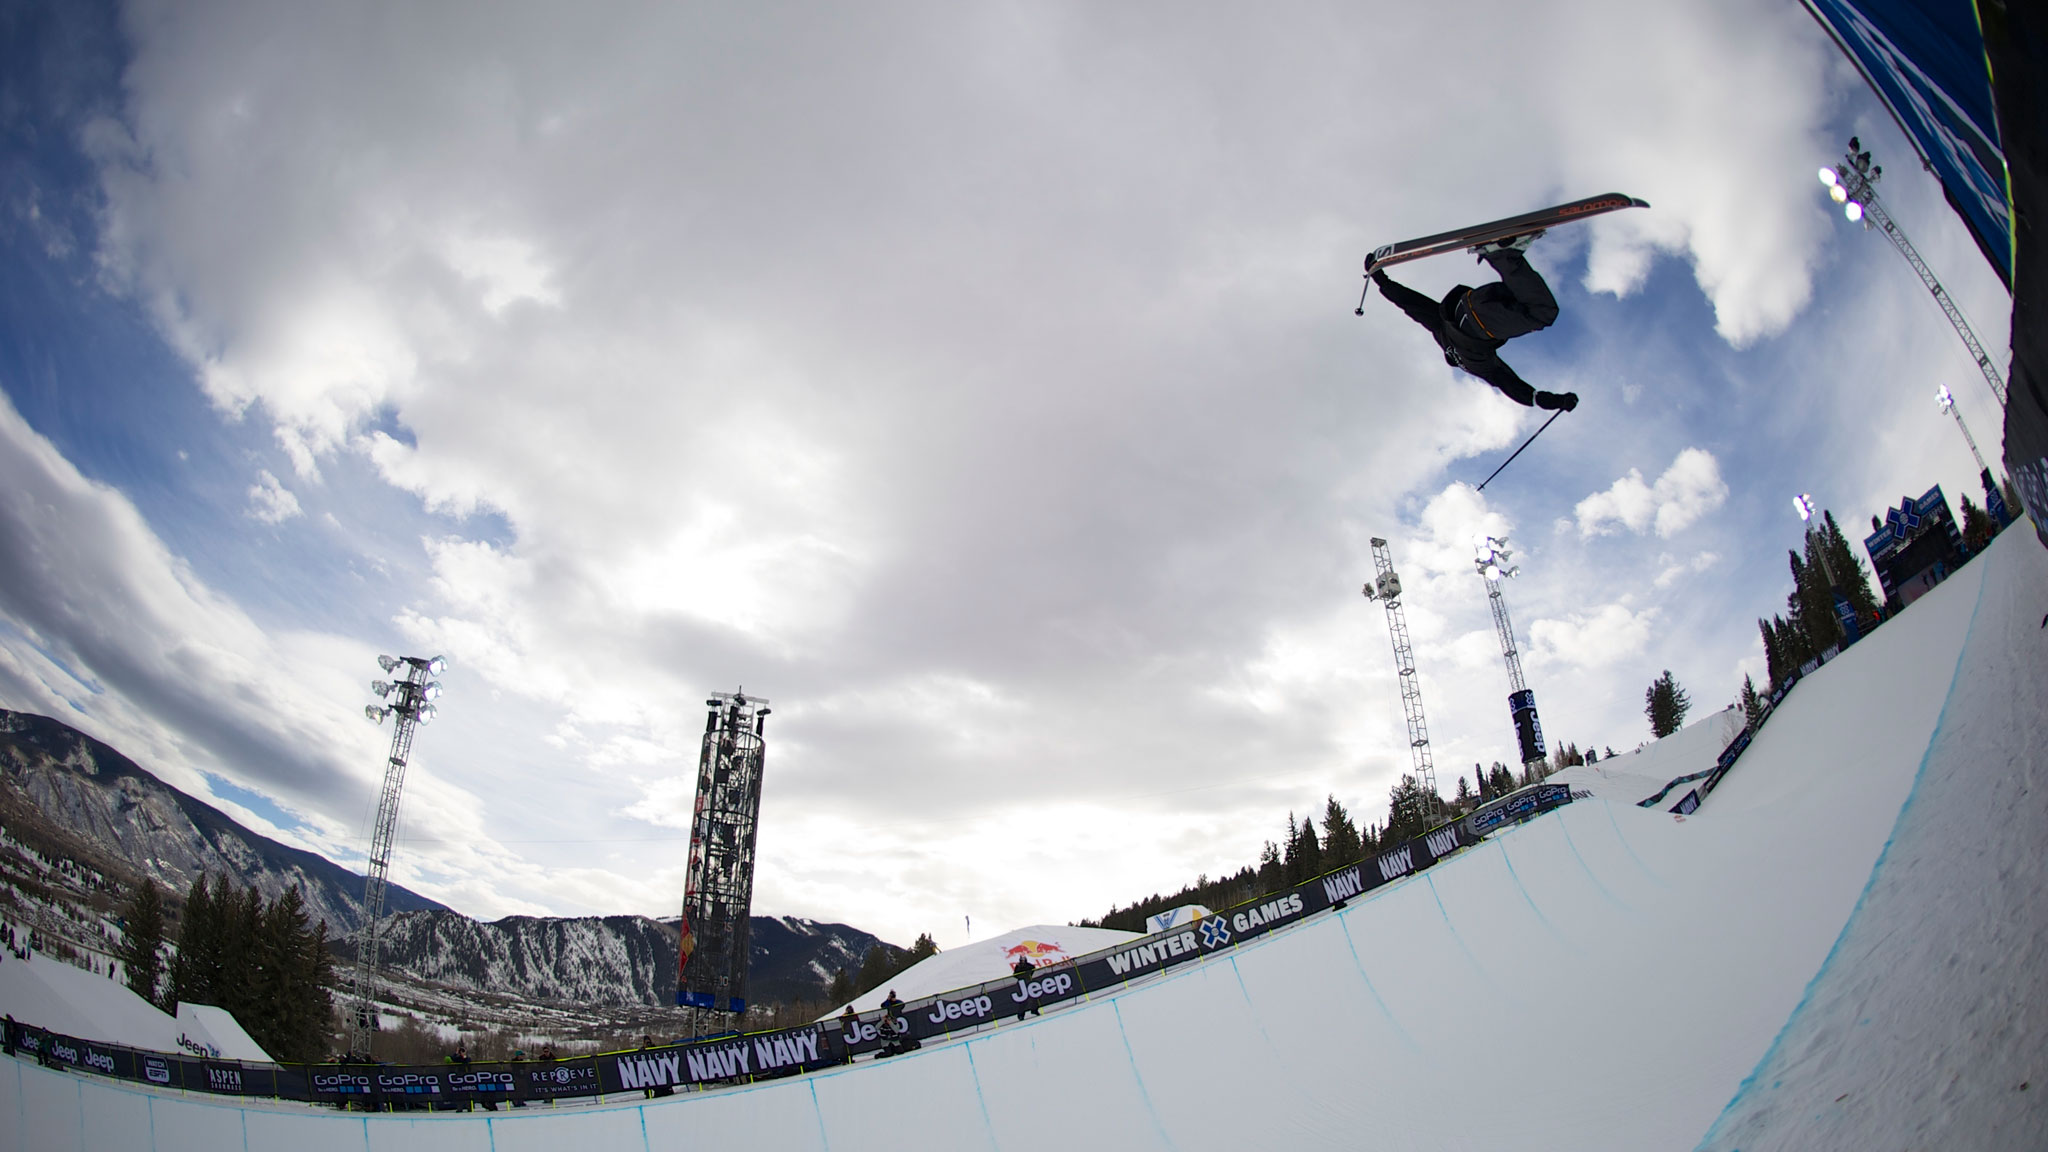 Canadian halfpipe skier Noah Bowman had a breakout year in 2012 with a silver medal at X Games Aspen.